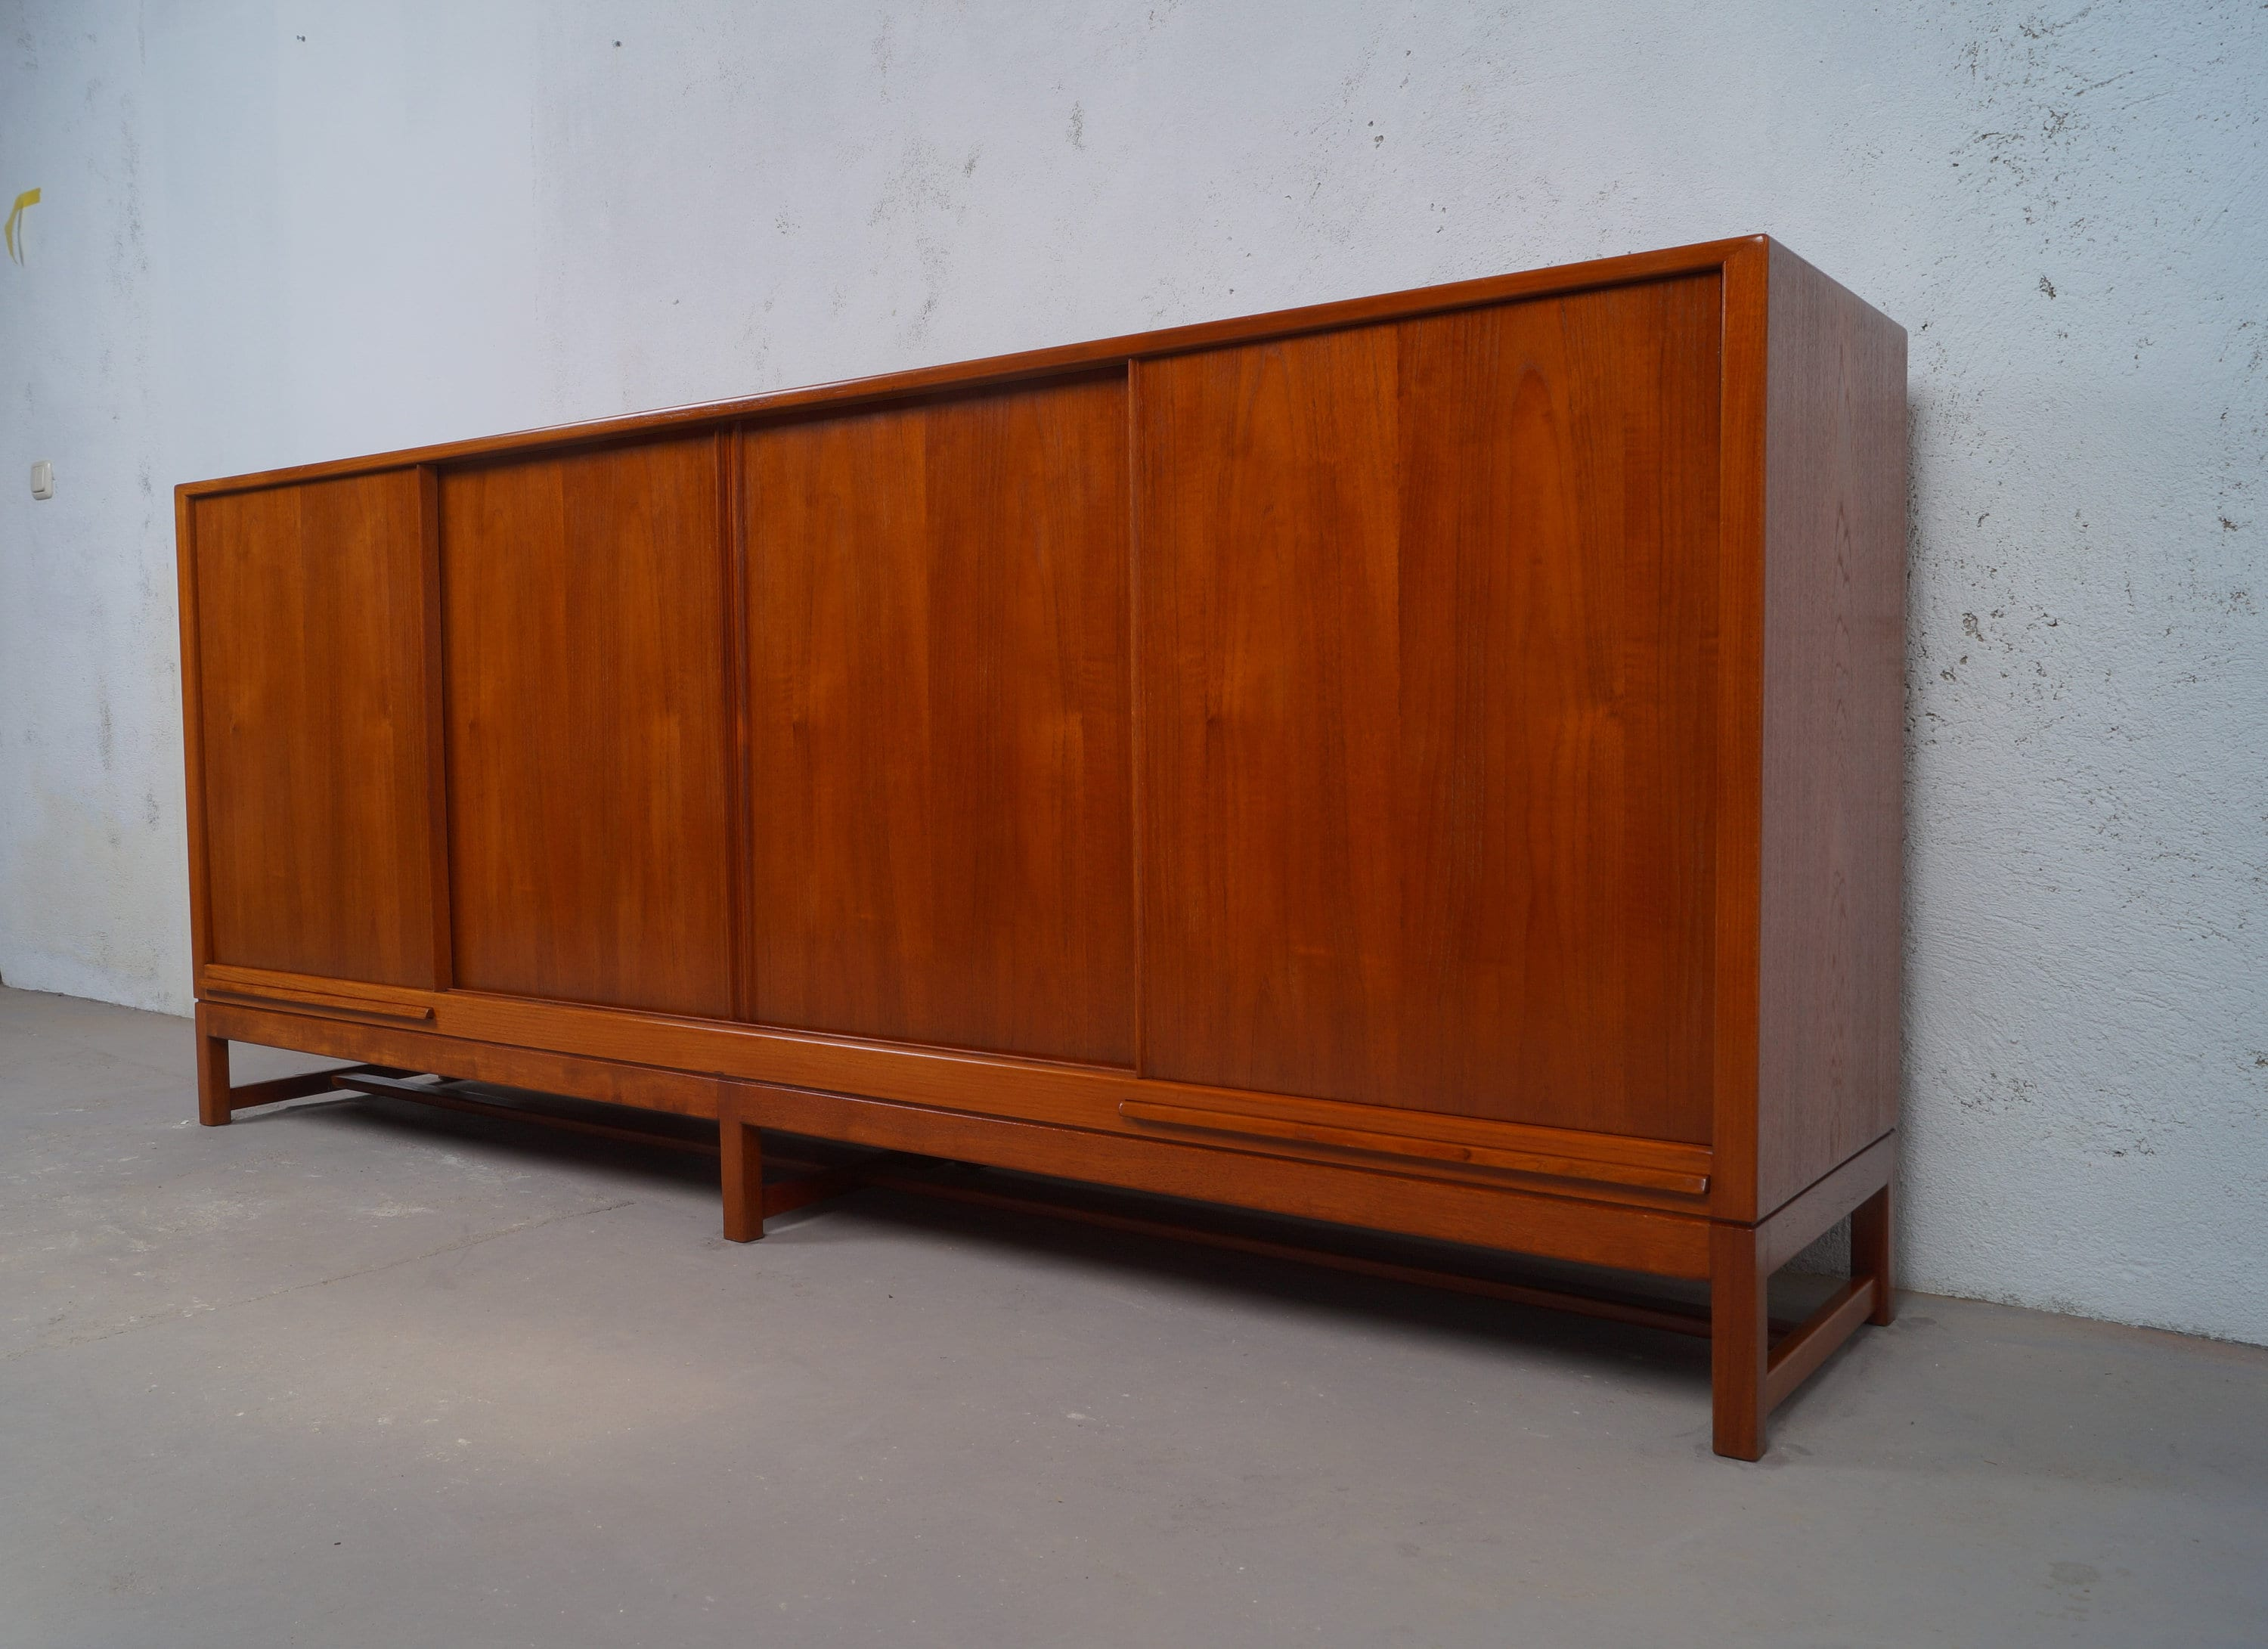 sideboard 60er jahre teak midcentury danish modern vintage. Black Bedroom Furniture Sets. Home Design Ideas